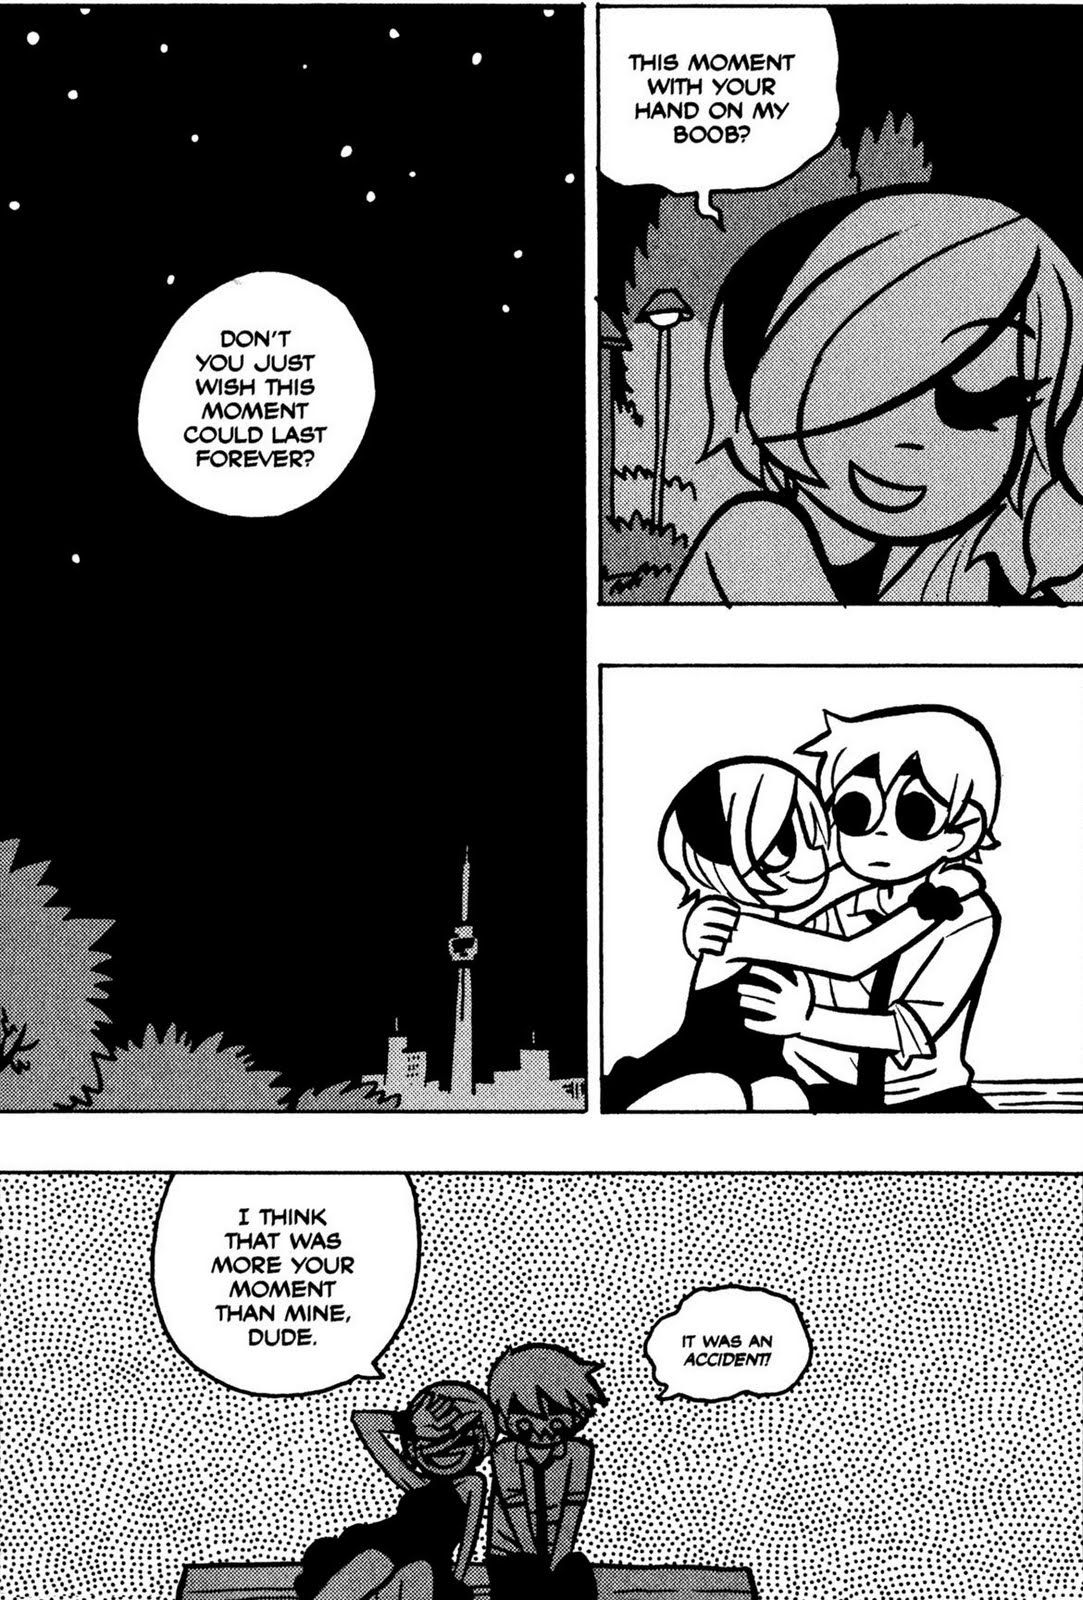 Scott Pilgrim Moments Scott Pilgrim Comic Scott Pilgrim Scott